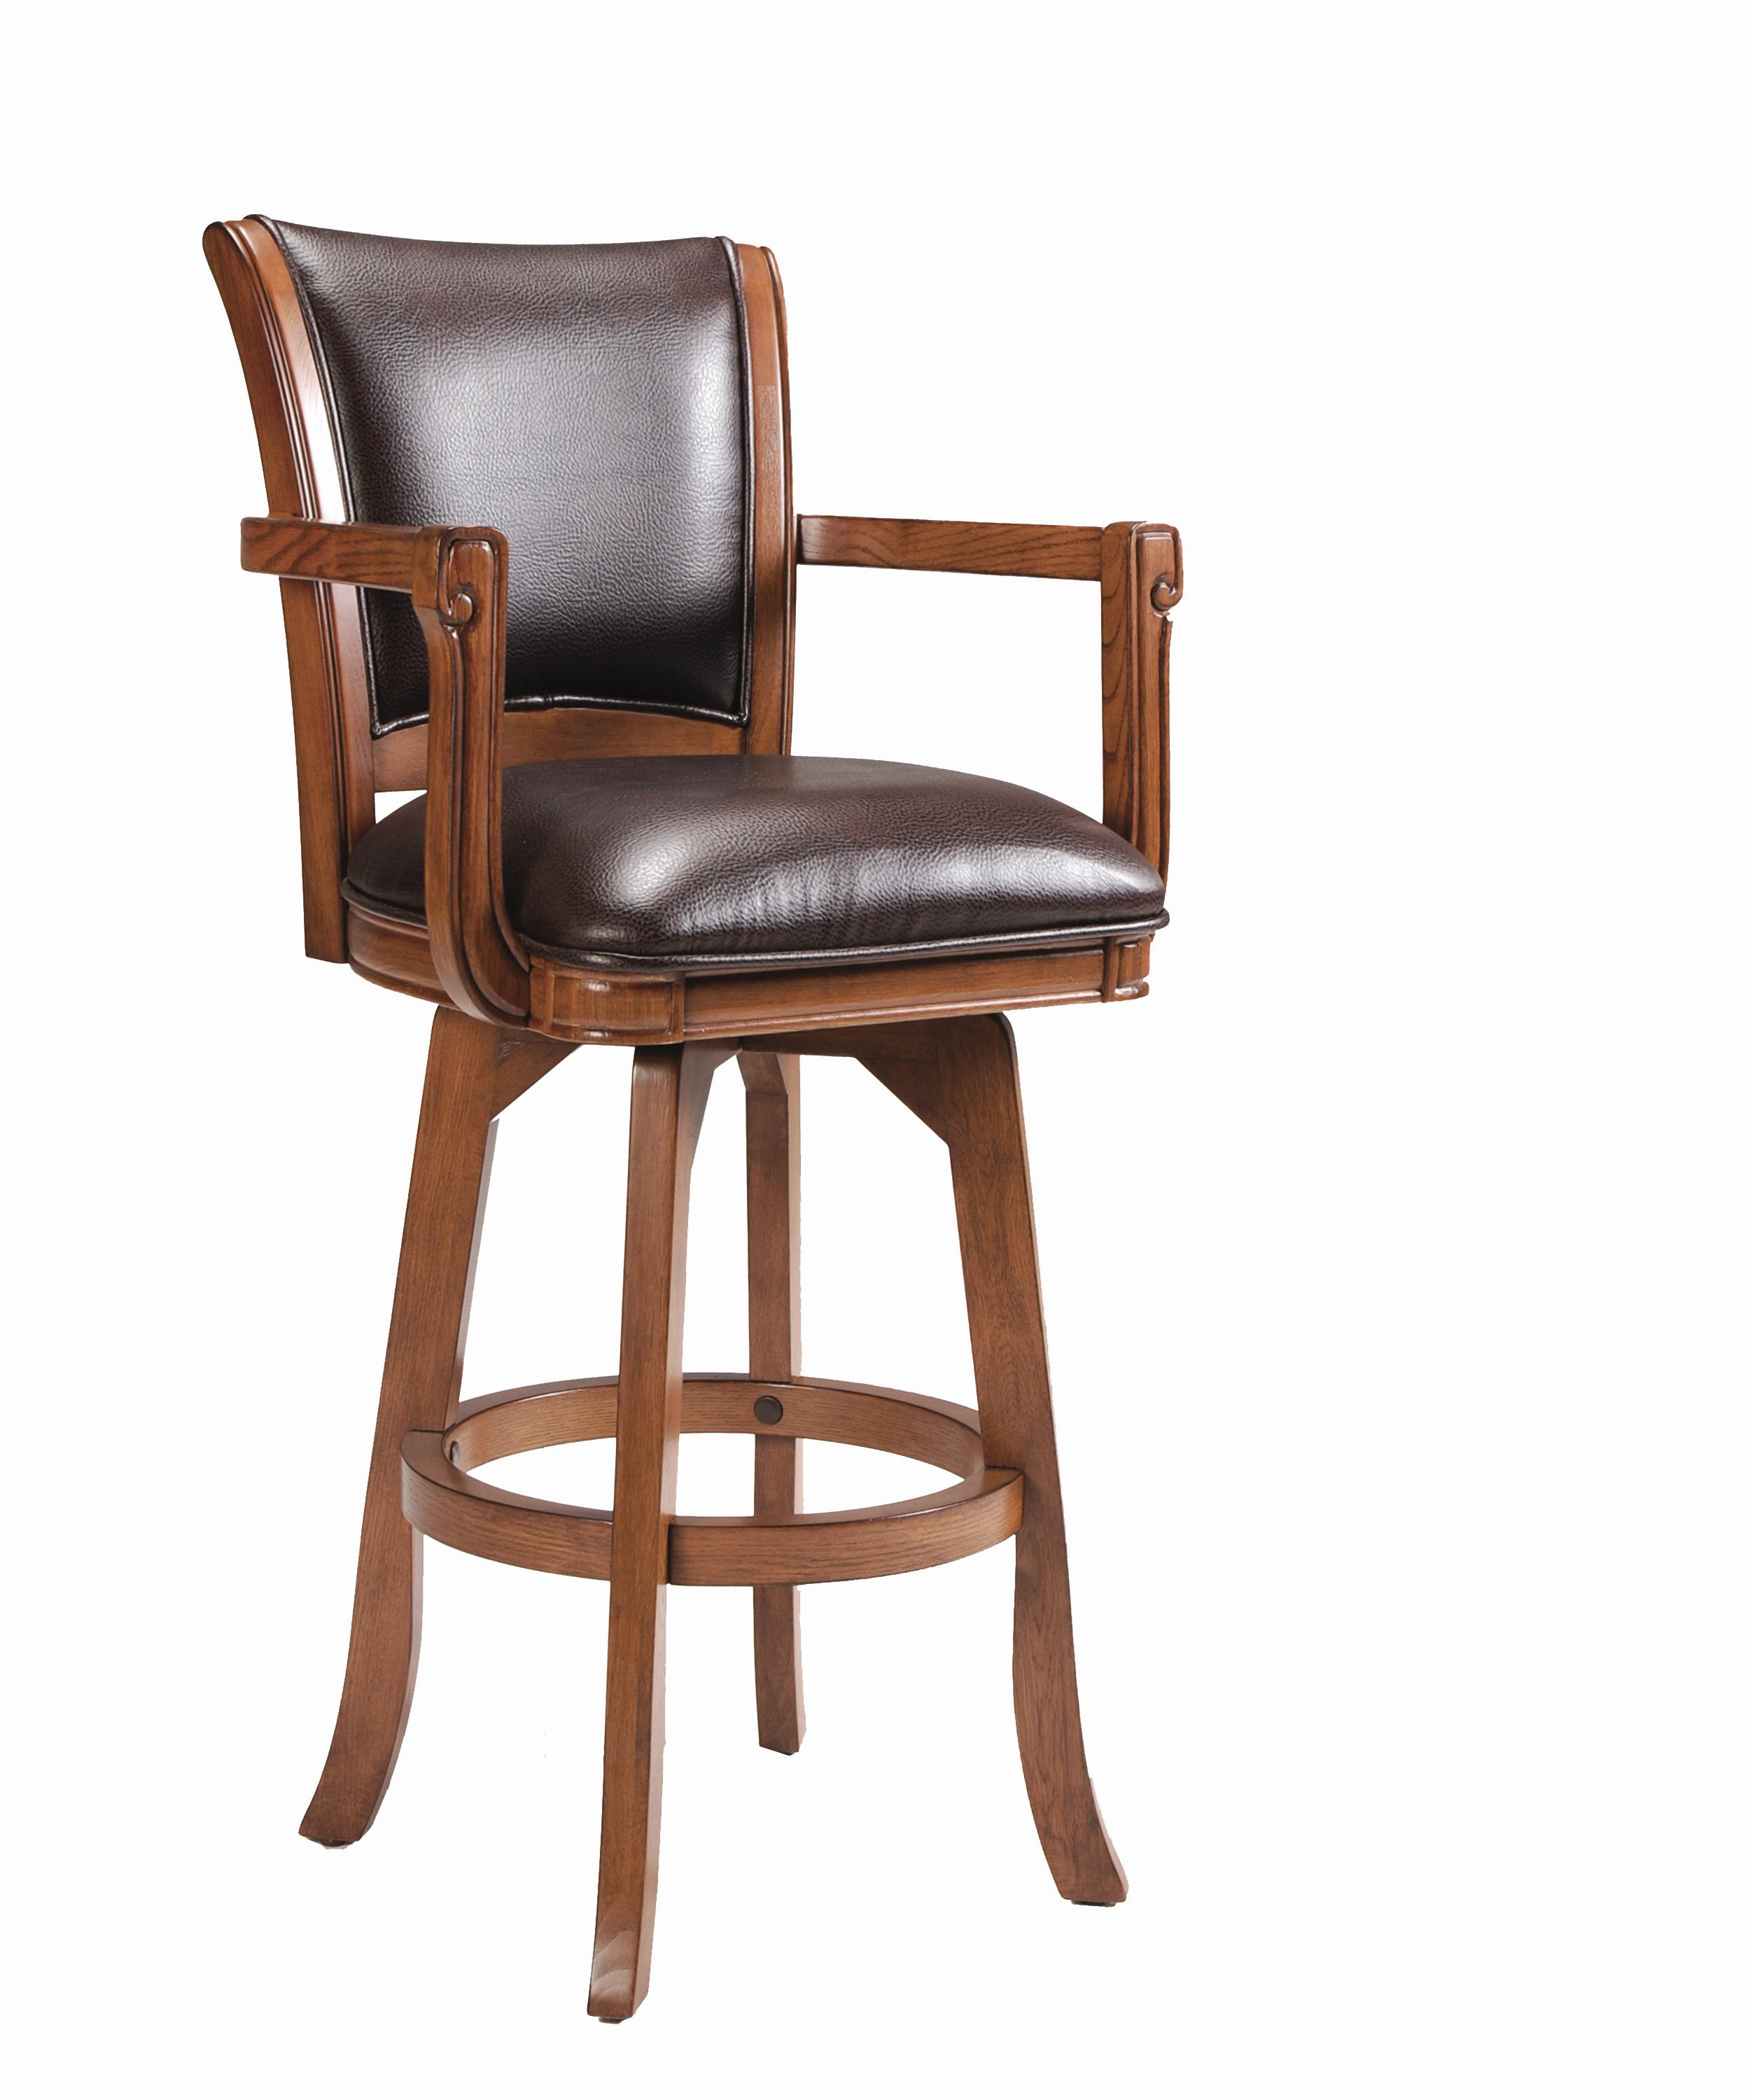 Game Stools & Chairs Park View Swivel Bar Stool by Hillsdale at Mueller Furniture